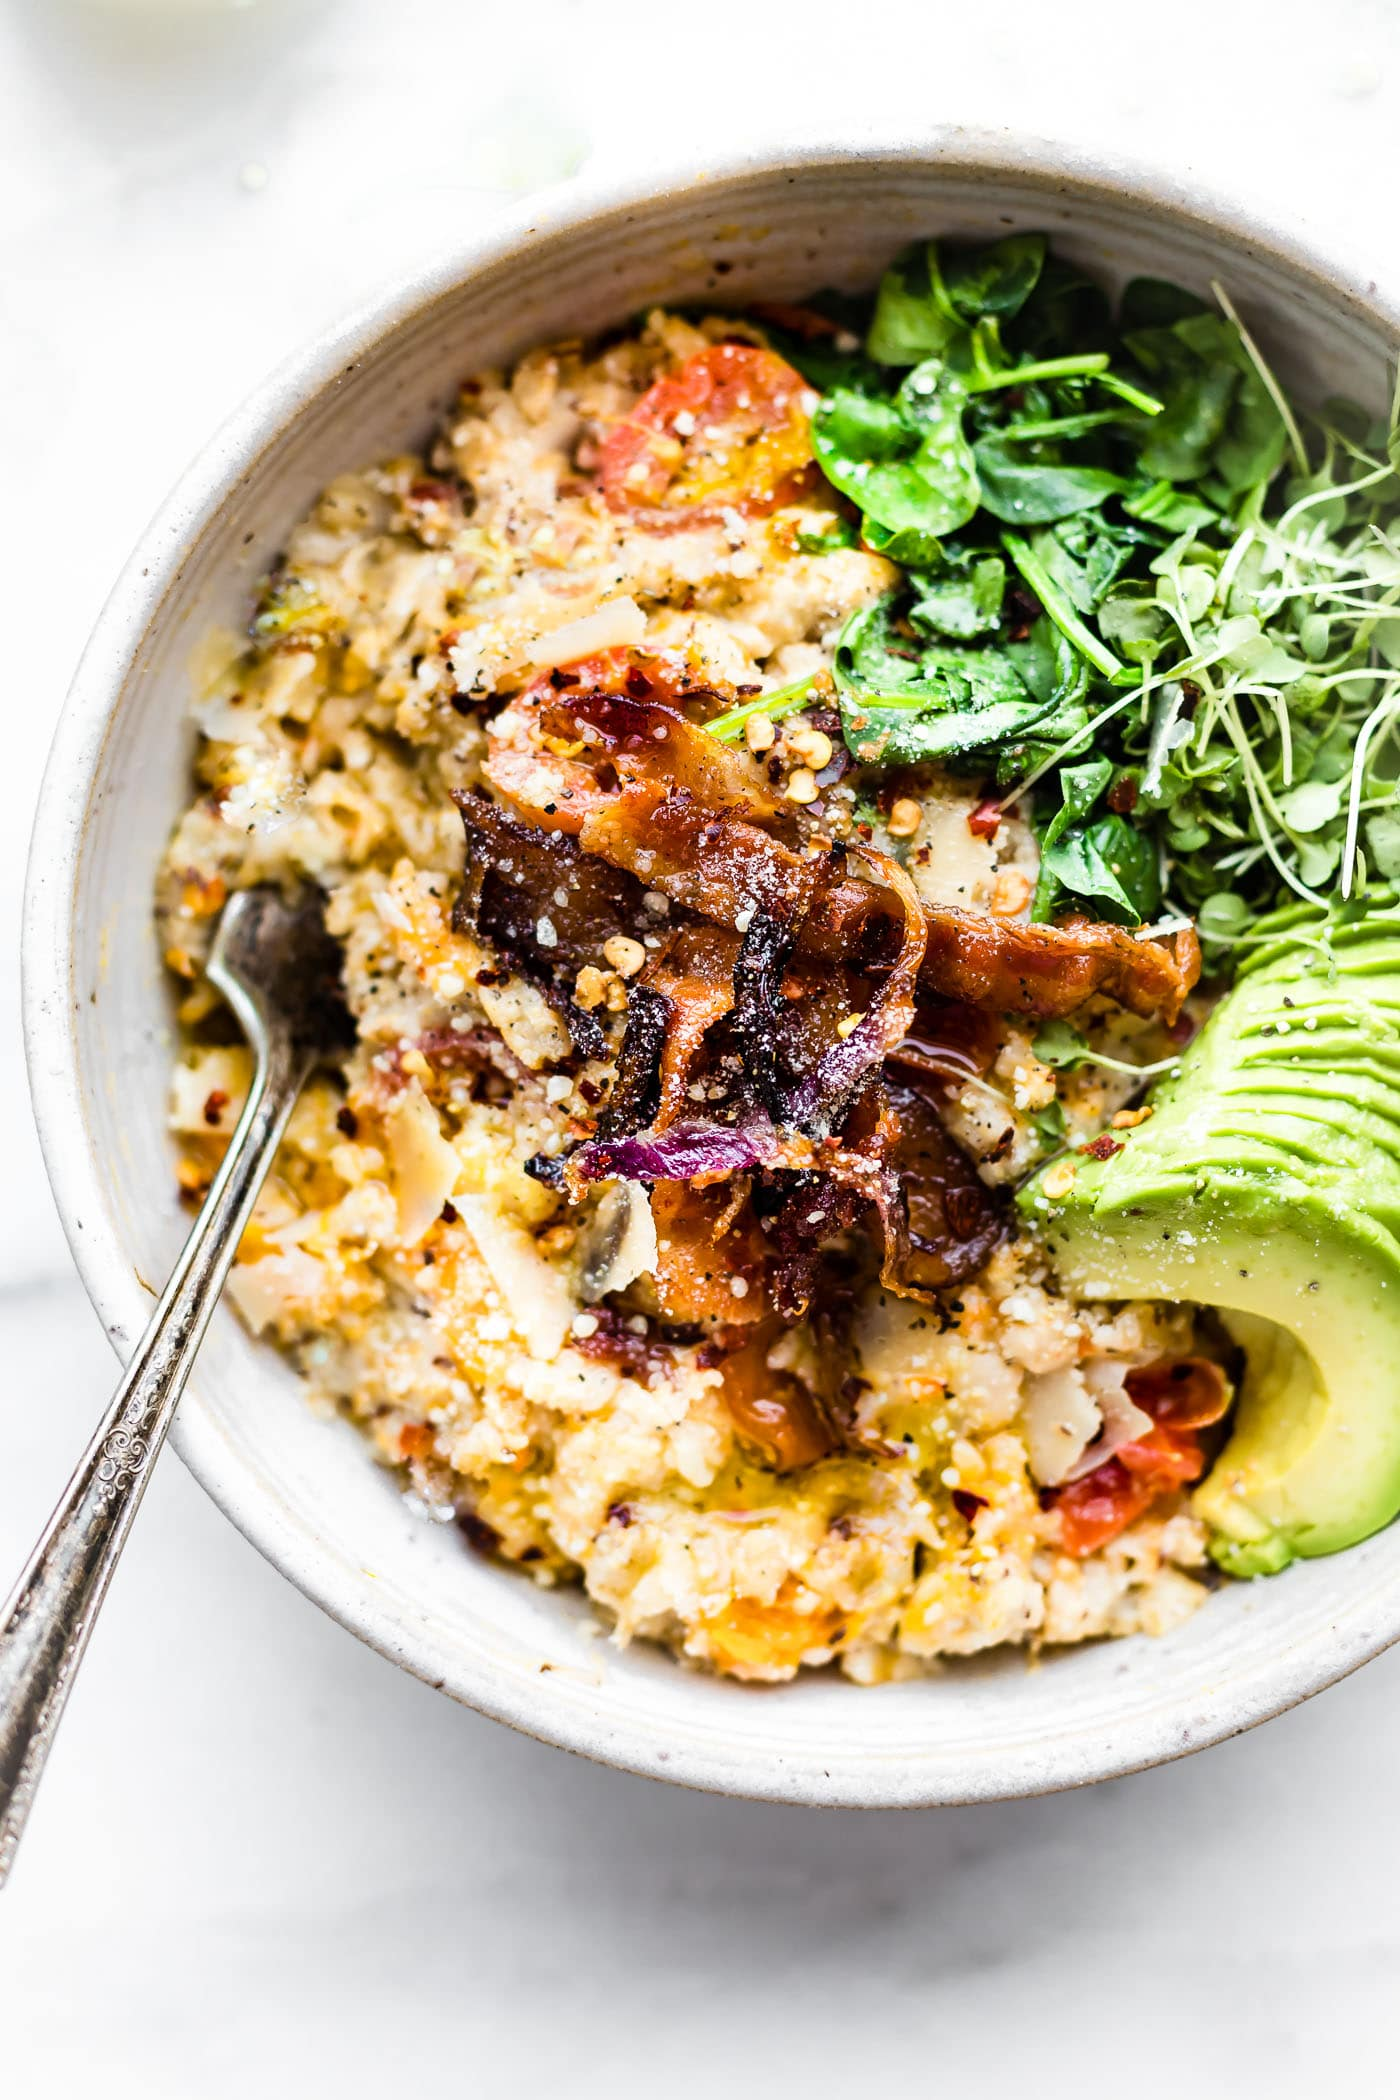 This Savory slow cooker oatmeal with crispy bacon will make you jump out of bed! A savory spin to your regular sweet oatmeal and total crowd pleaser dish, which is perfect for busy mornings! A Slow cooker oatmeal made with the addition butternut squash, garlic, herbs, parmesan cheese, and topped with crispy bacon and avocado. An easy to make well-rounded healthy meal for any time of day. Dairy free option